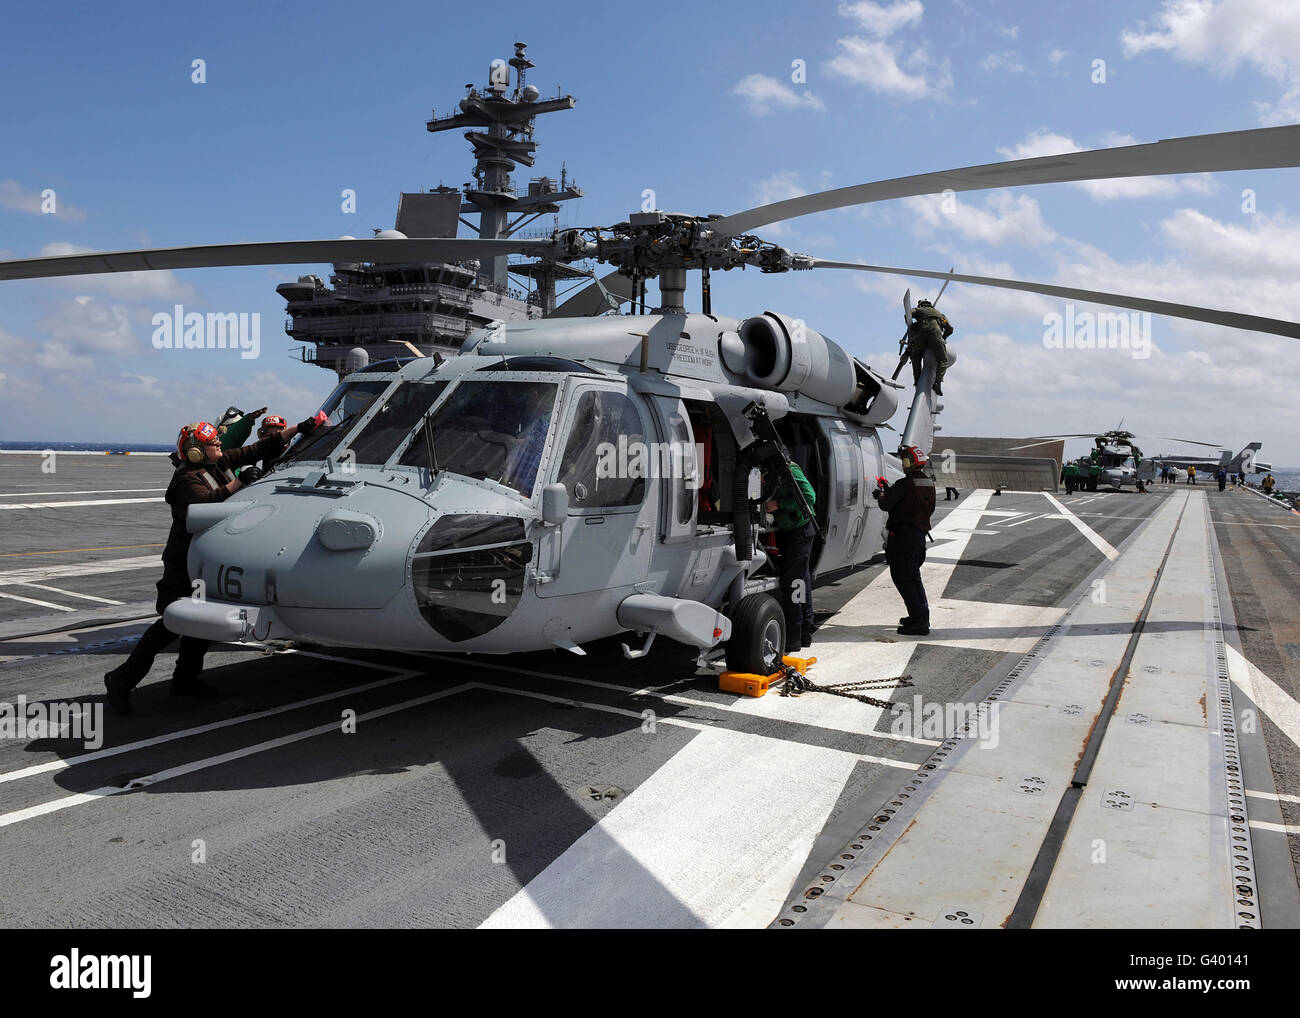 Crewmen prepare an MH-60S Sea Hawk helicopter aboard USS George H.W. Bush. - Stock Image